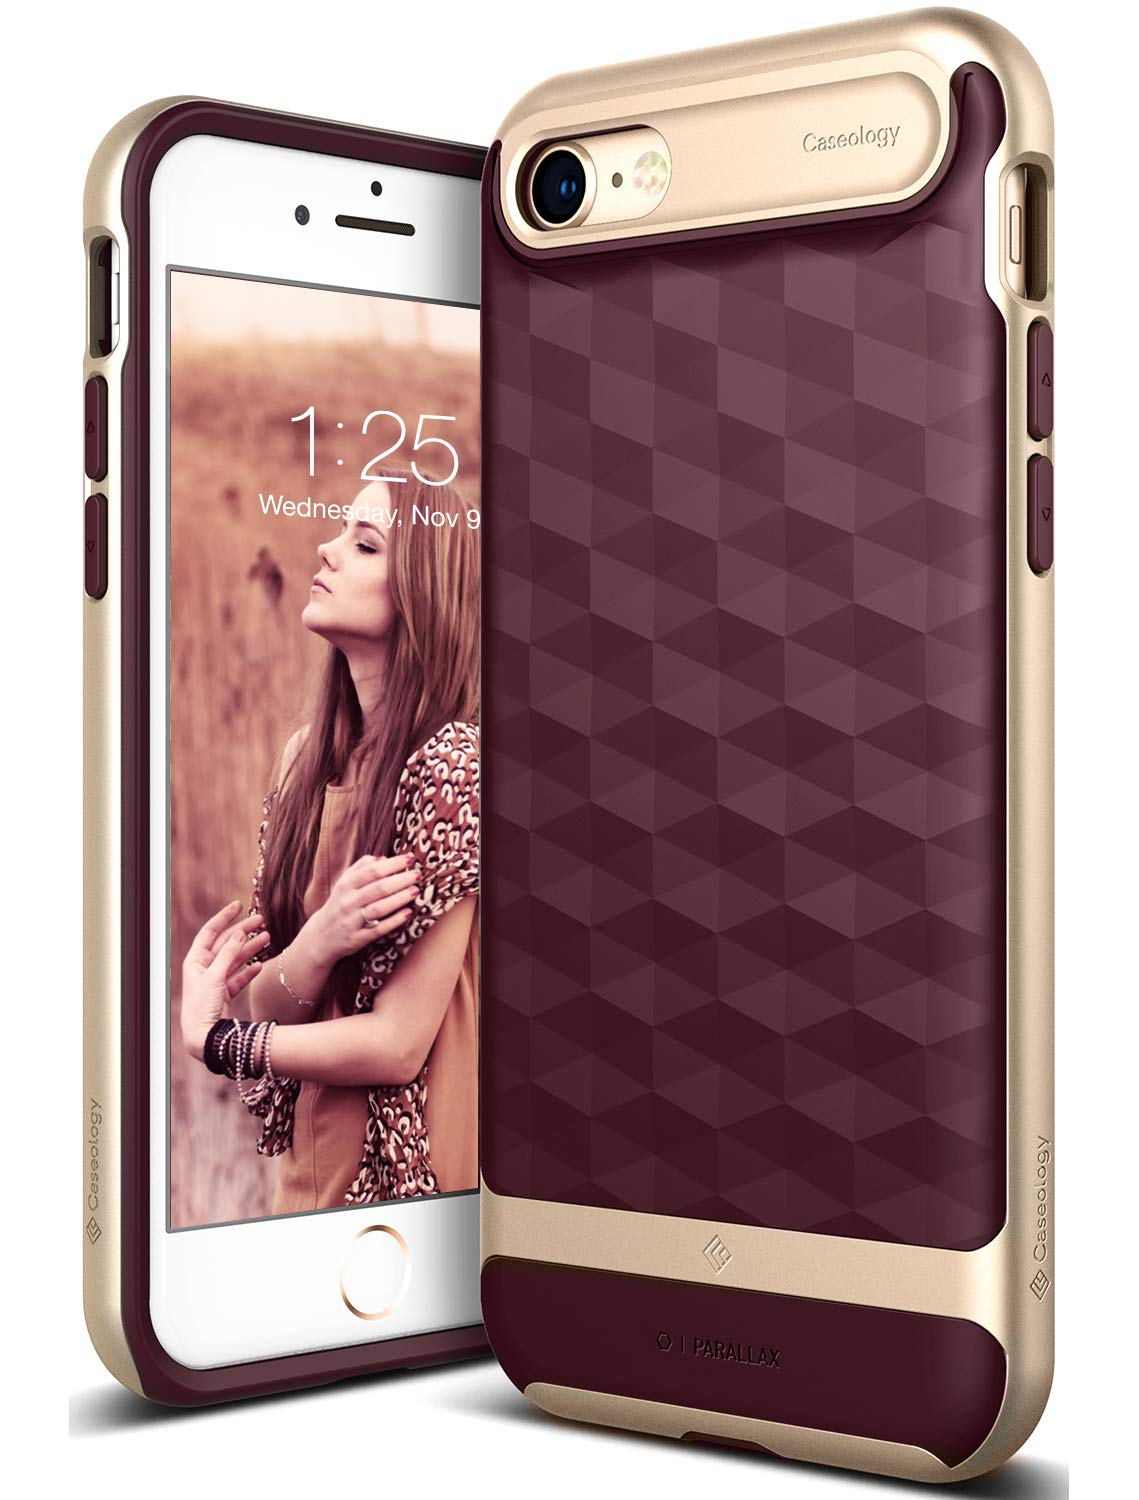 Caseology Parallax Series iPhone 8/7 Cover Case with Design Slim Protective for Apple iPhone 7 (2016) / iPhone 8 (2017) - Burgundy